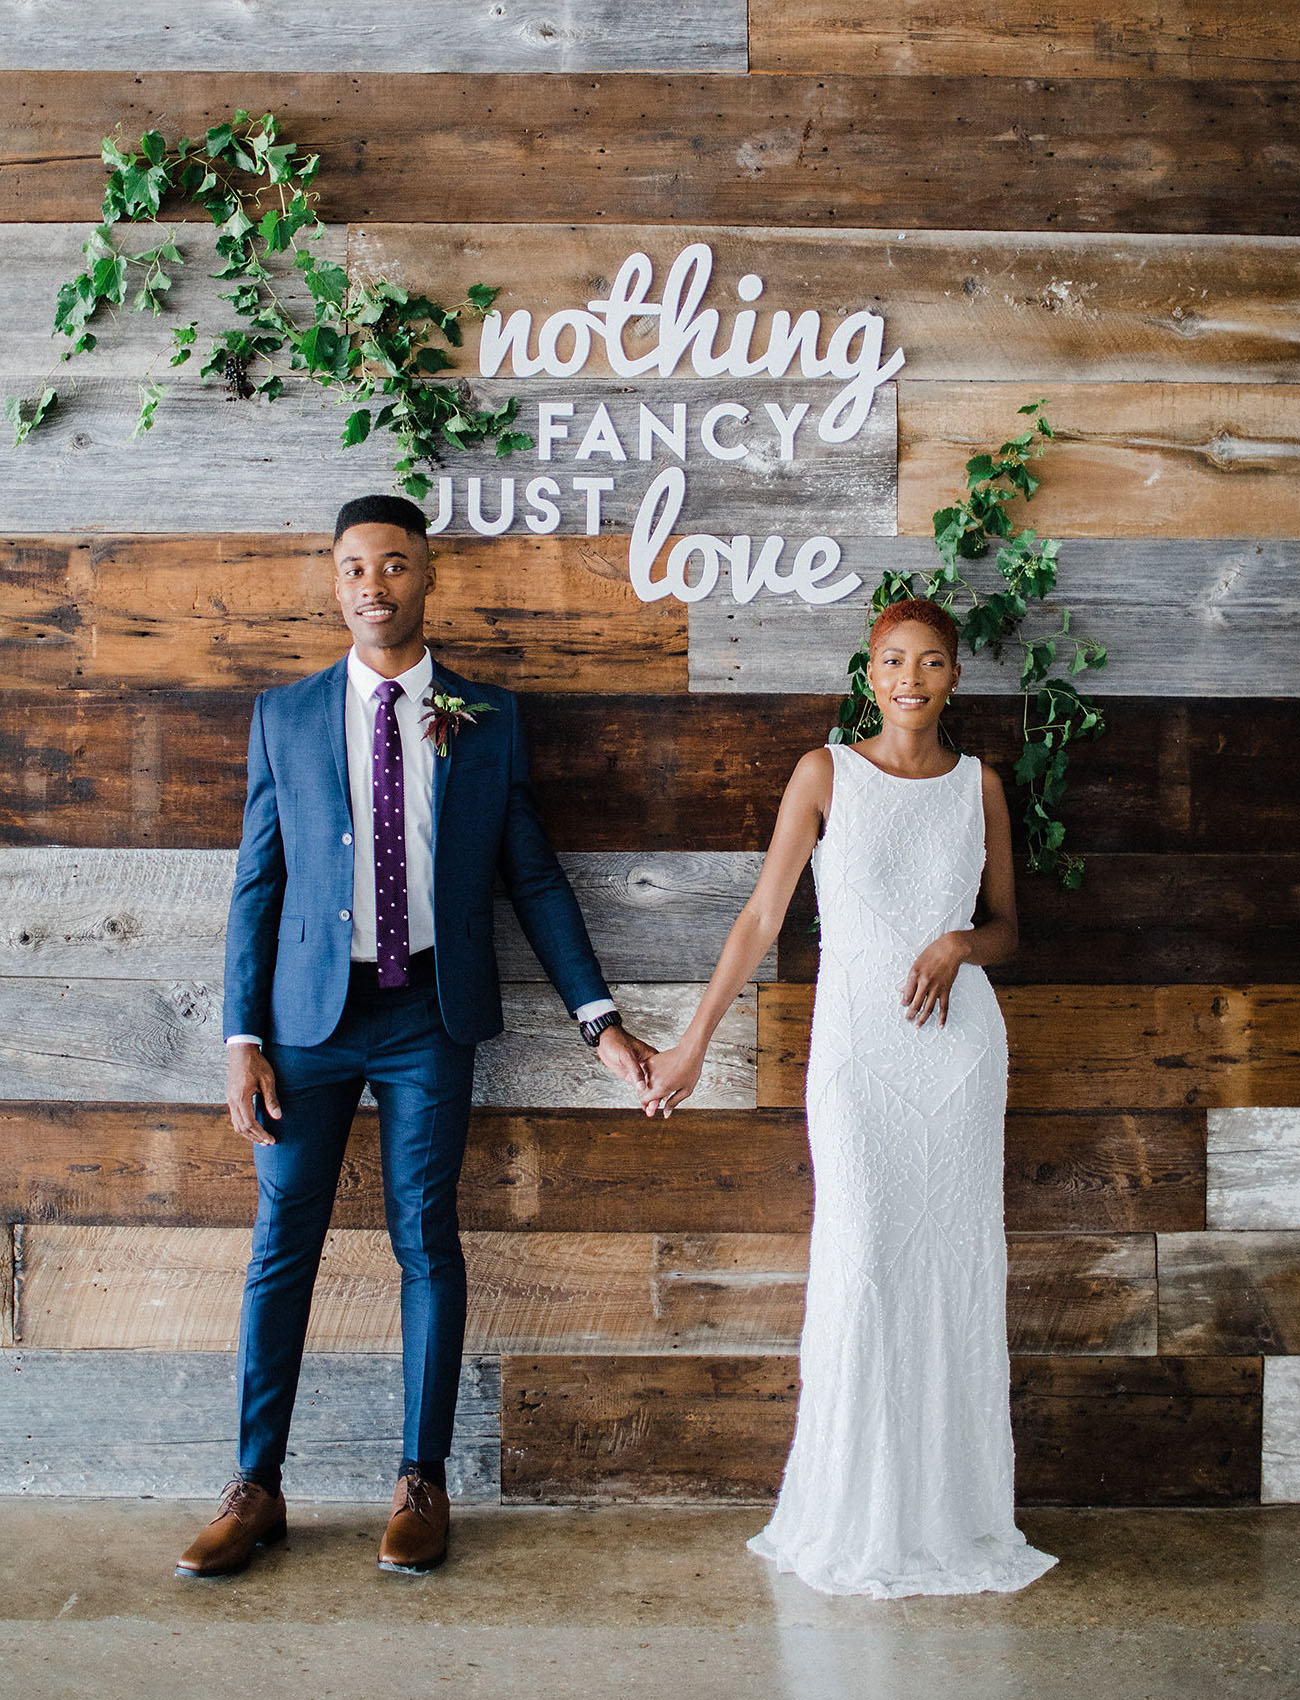 Laid-back Lux, Foodie Wedding Inspiration